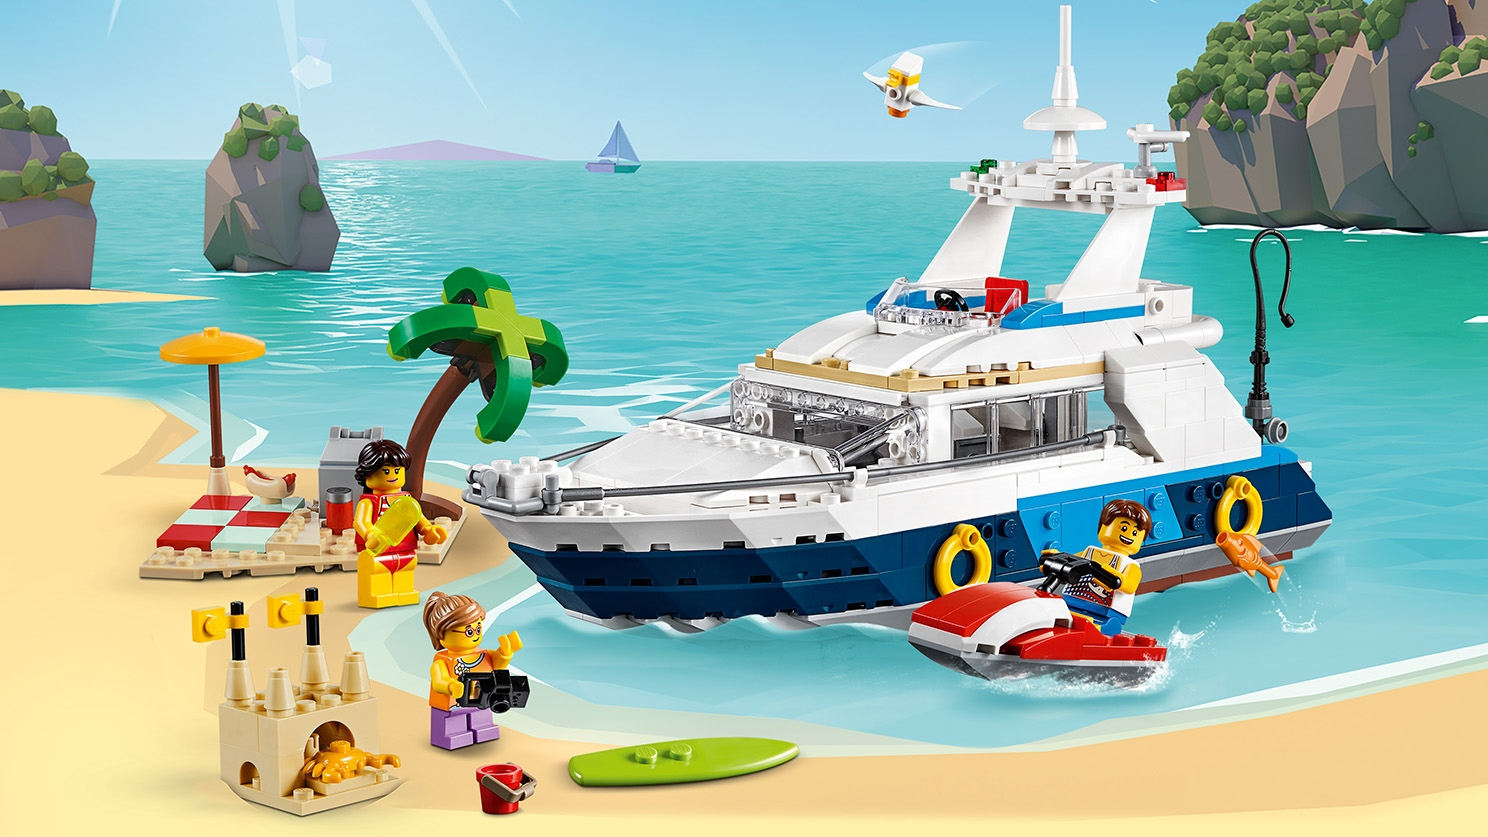 LEGO Creator 3 in 1 - 31083 Cruising Adventures - Build a yacht and hang out on the beach and enjoy the sun, surf or build a sand castle.